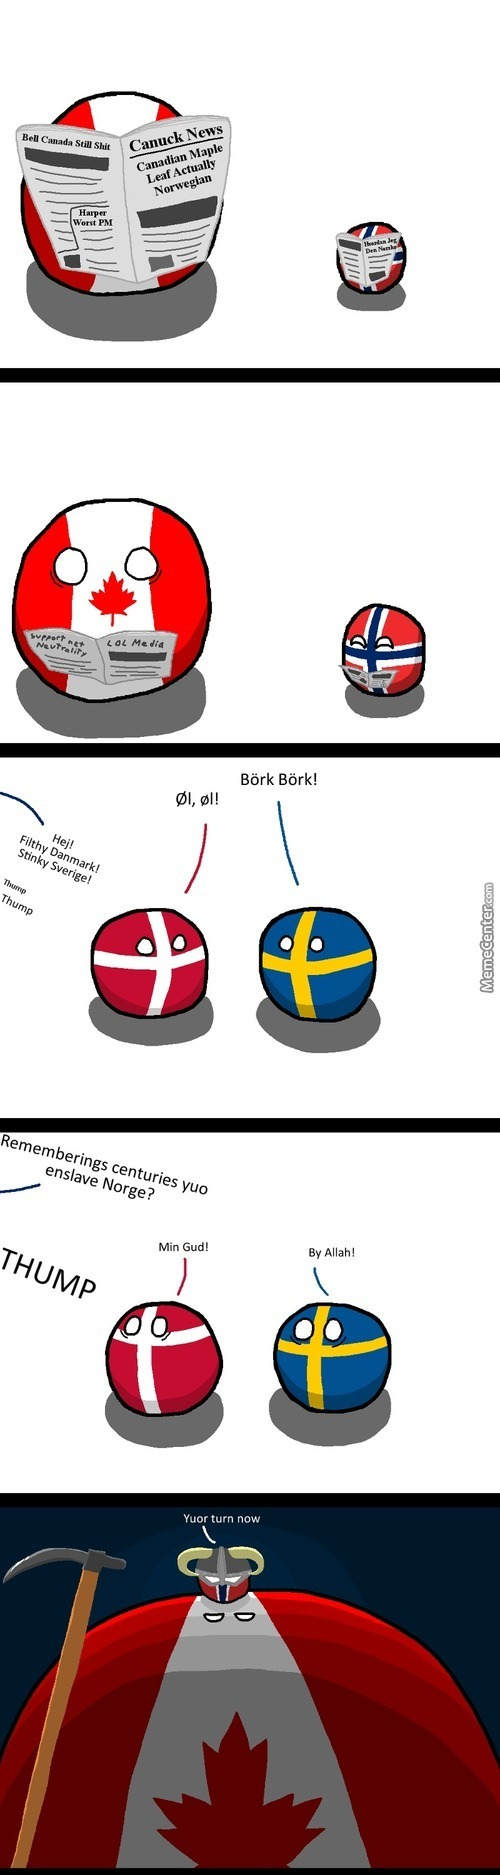 Norway Memes Best Collection Of Funny Norway Pictures